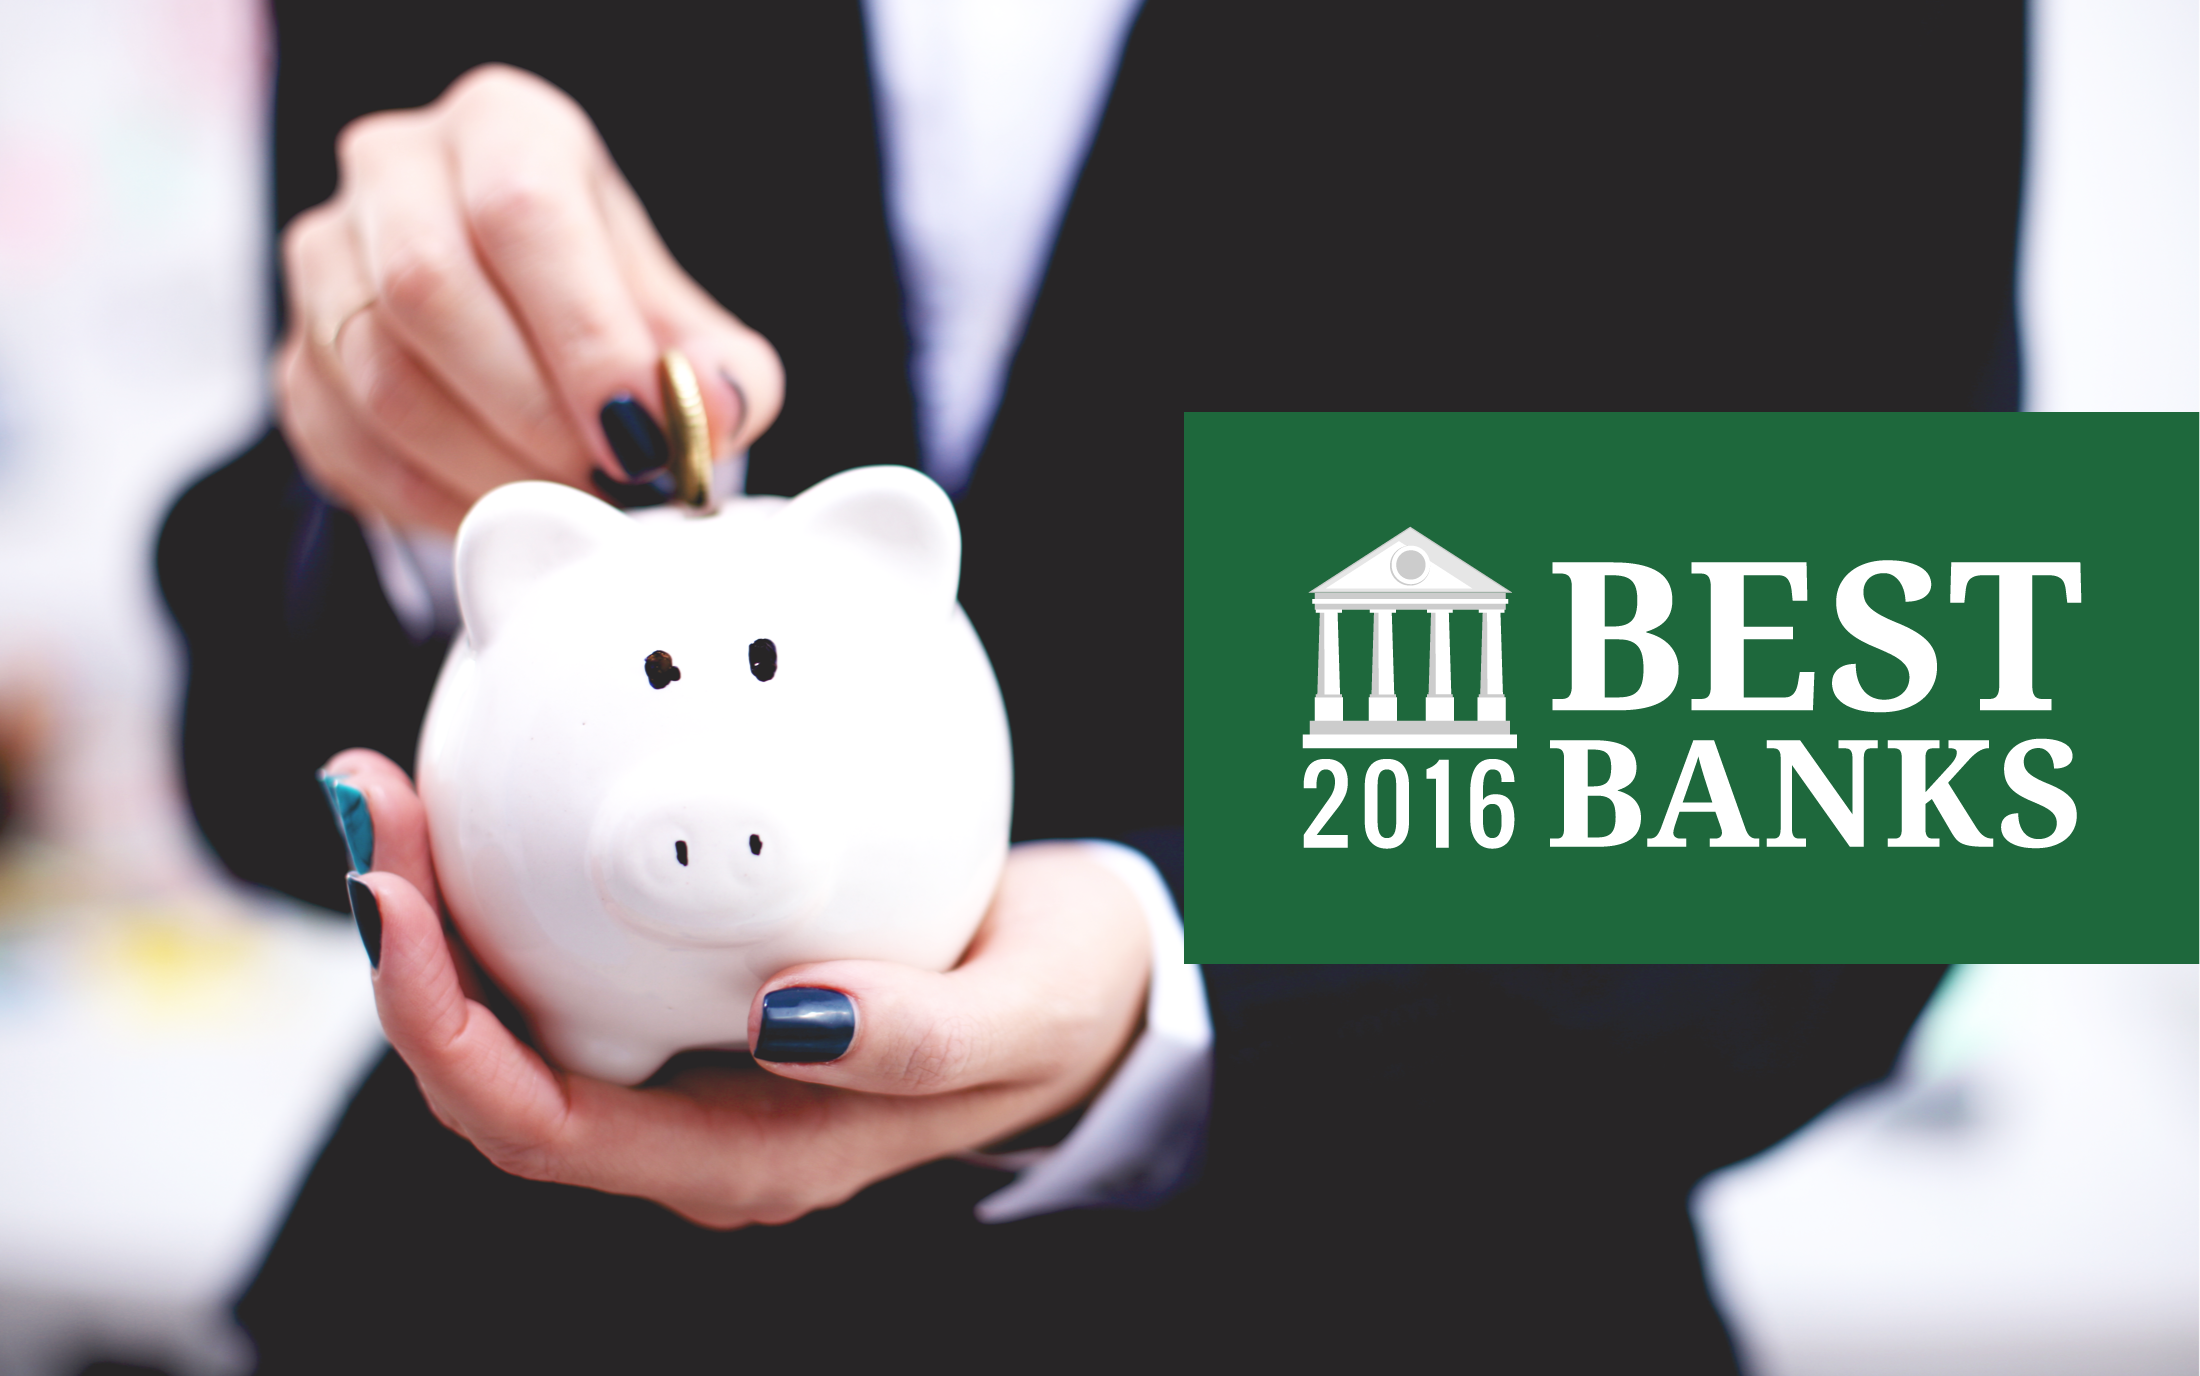 Best savings options 2016